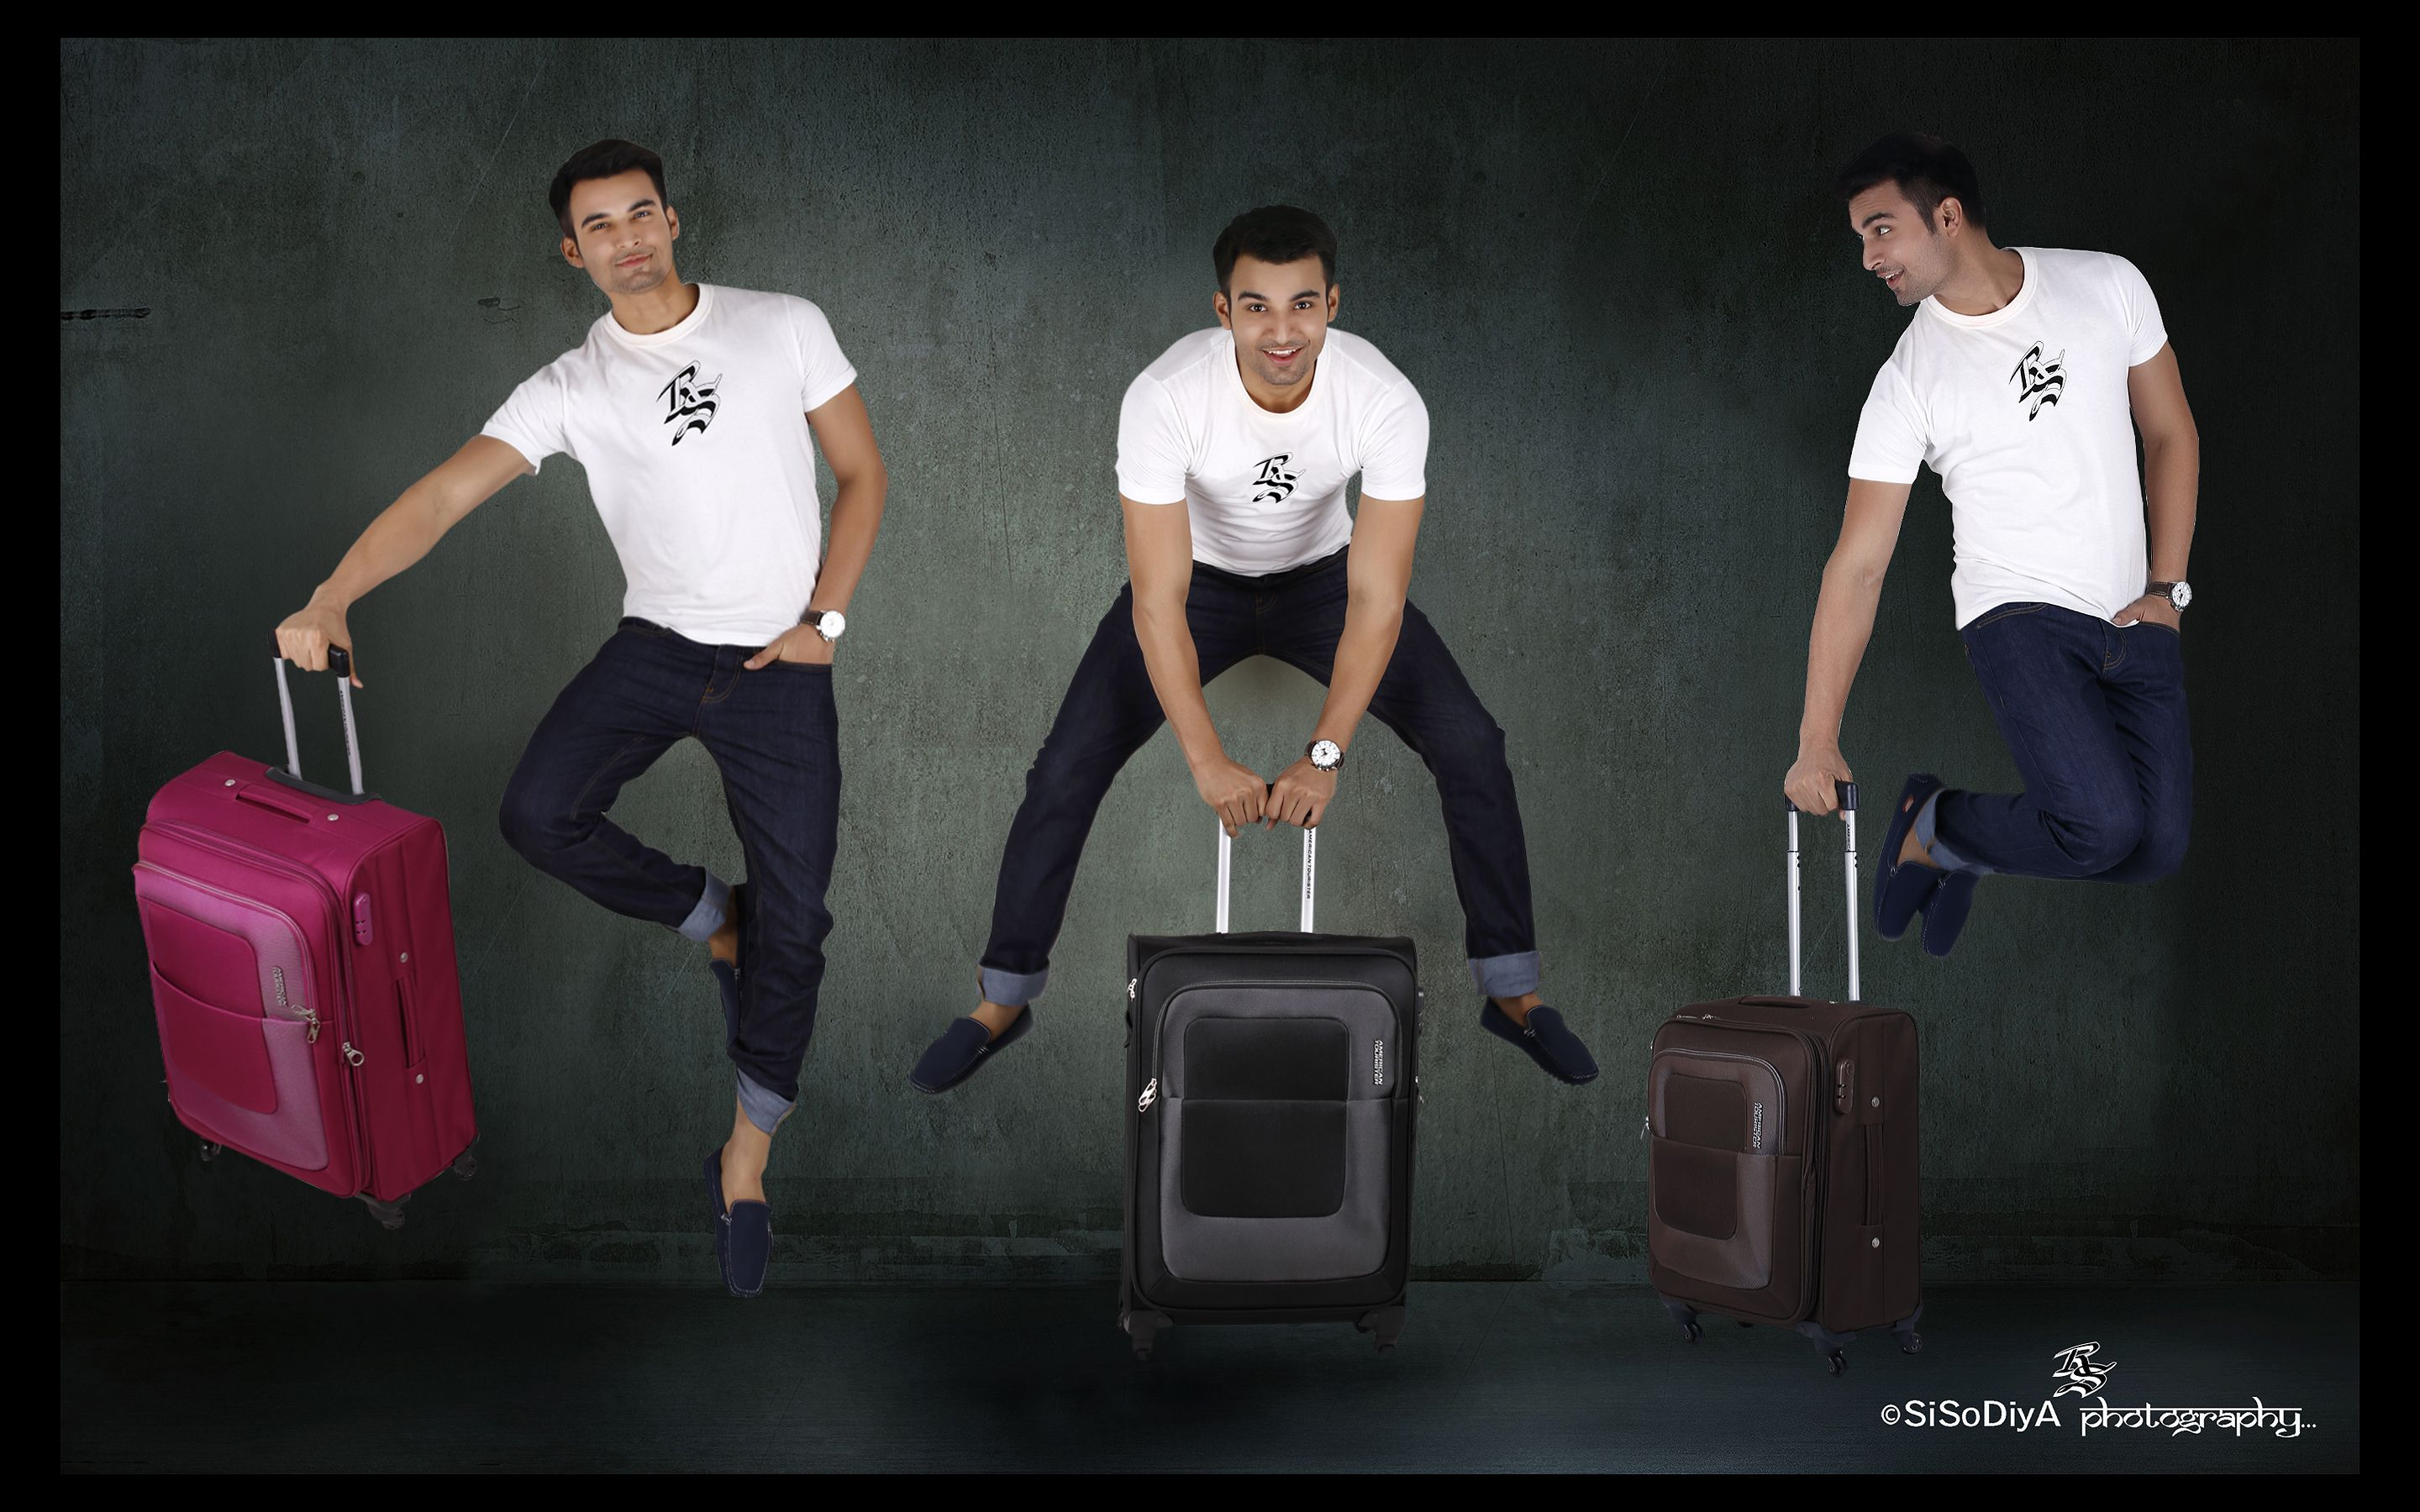 American Tourister Velocity Expandable Luggage Product Photo Shoot..